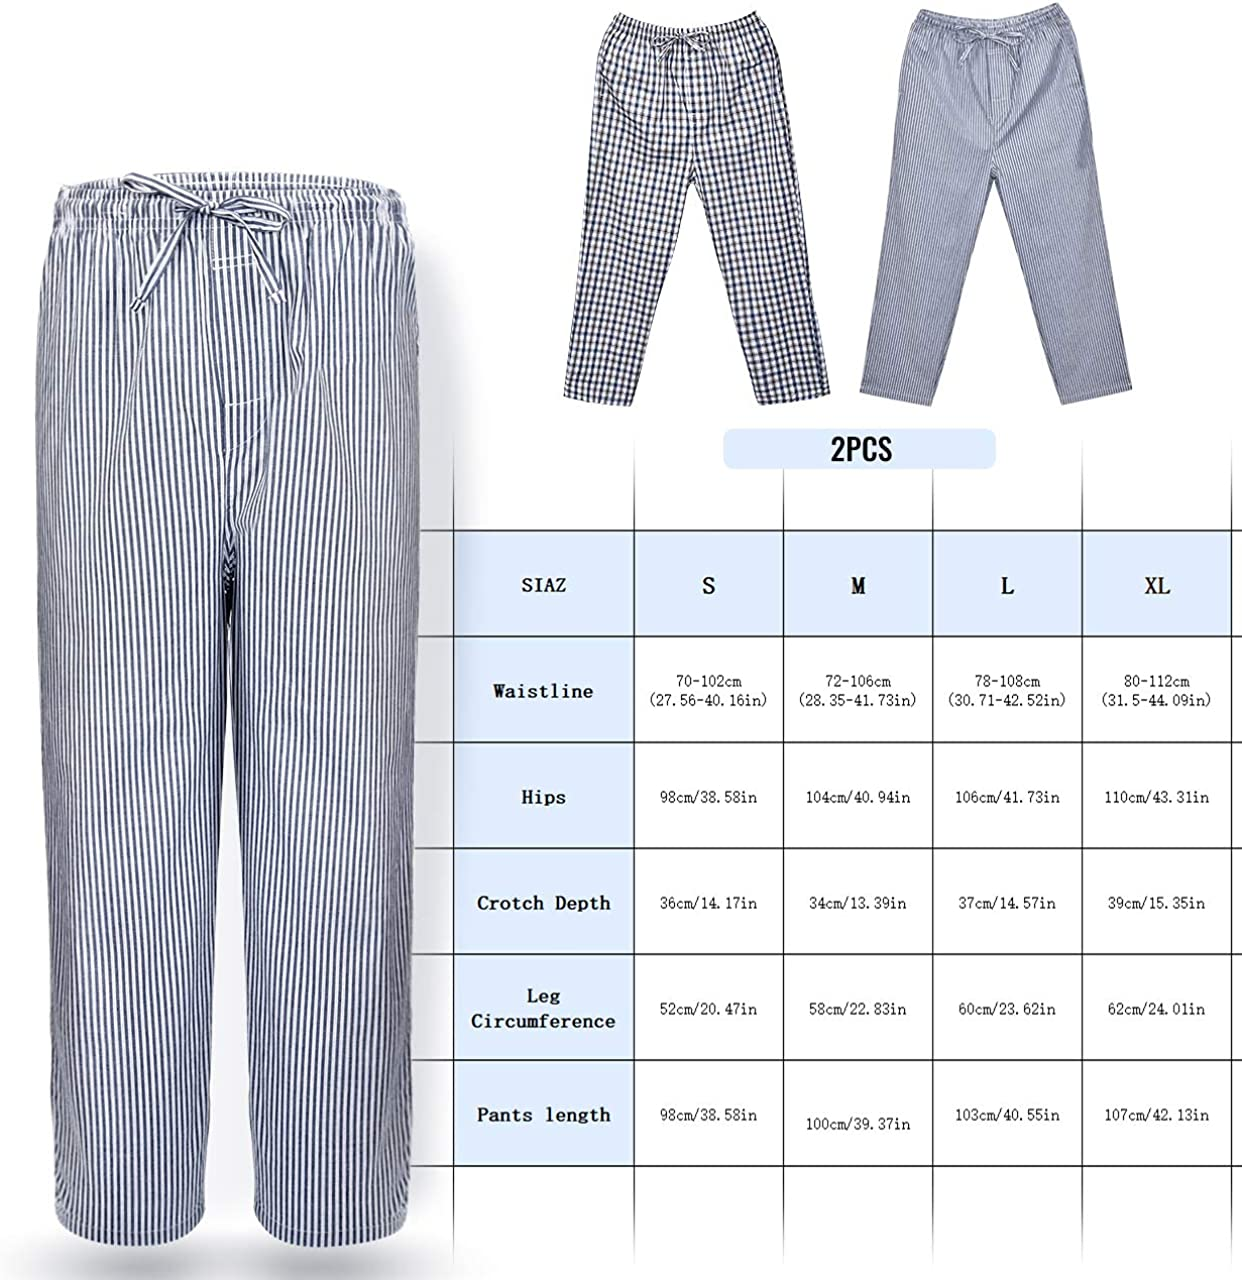 INSOUR Mens Pyjamas Pants 100/% Cotton Lounge Trouser with Drawstring Pack of 2